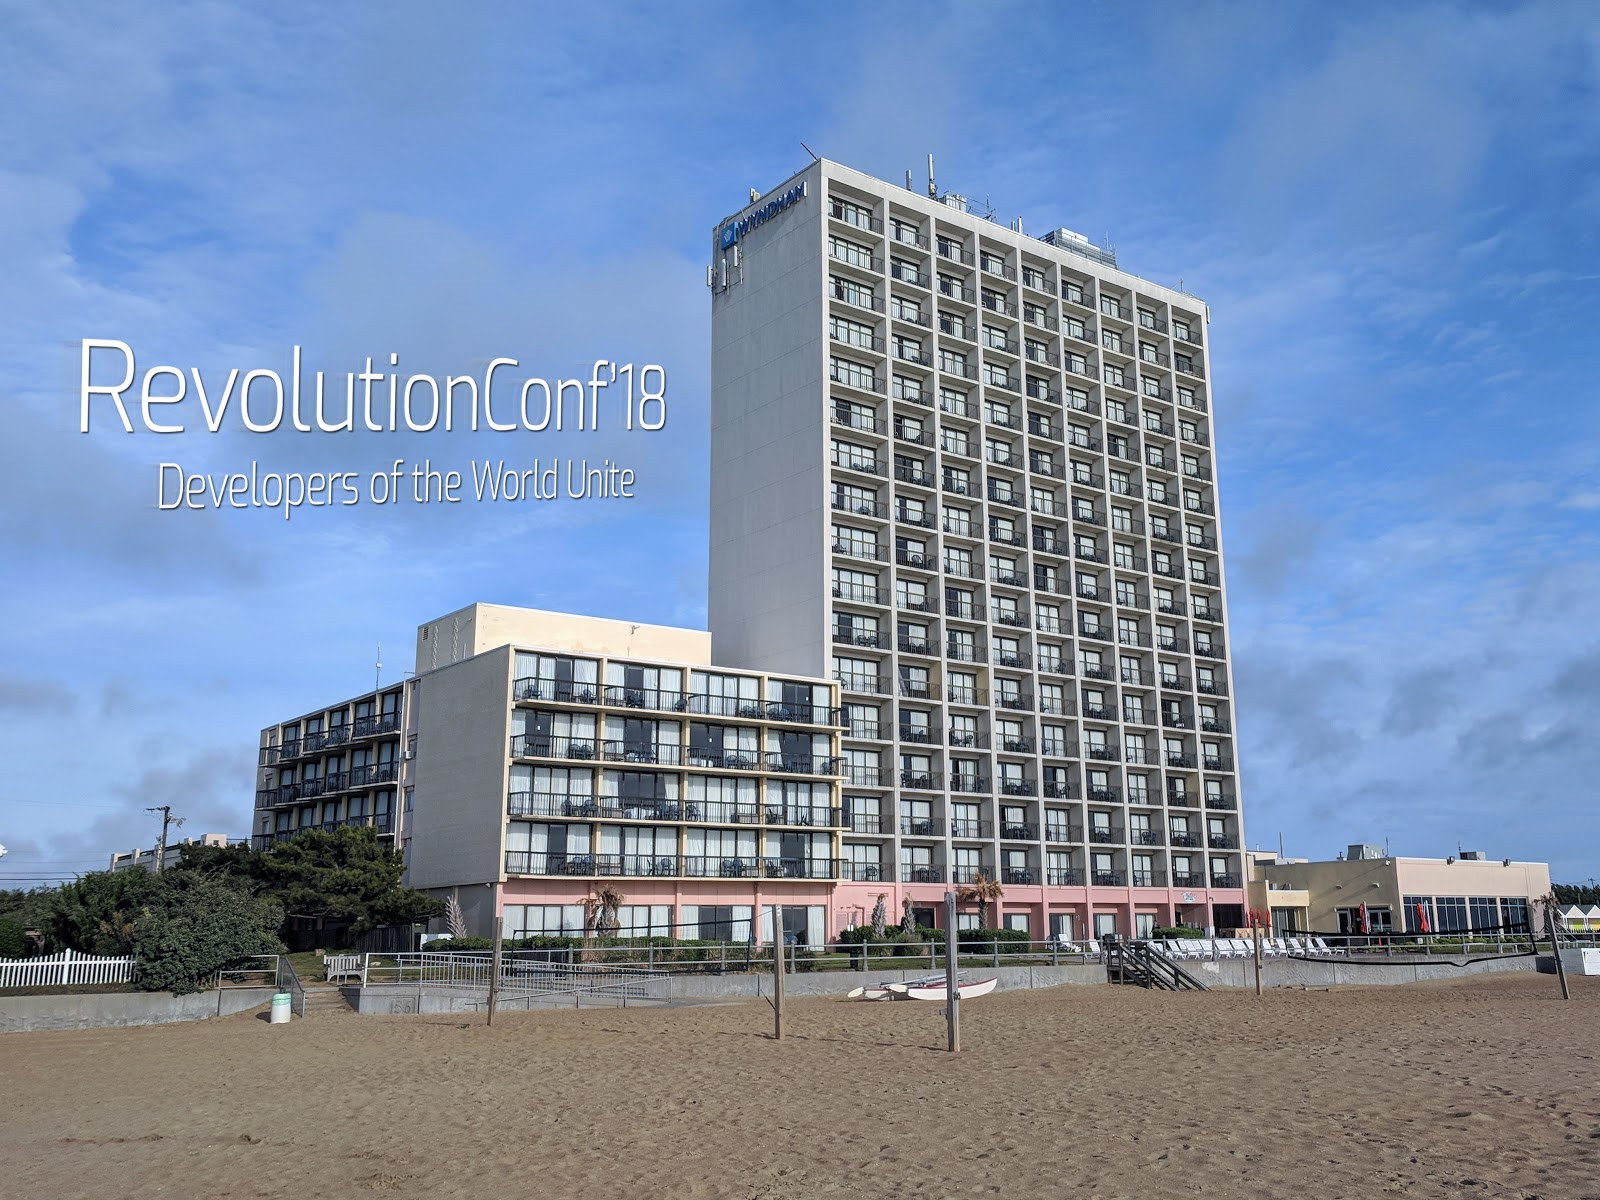 The Wyndham Virginia Beach Oceanfront Hotel and Resort